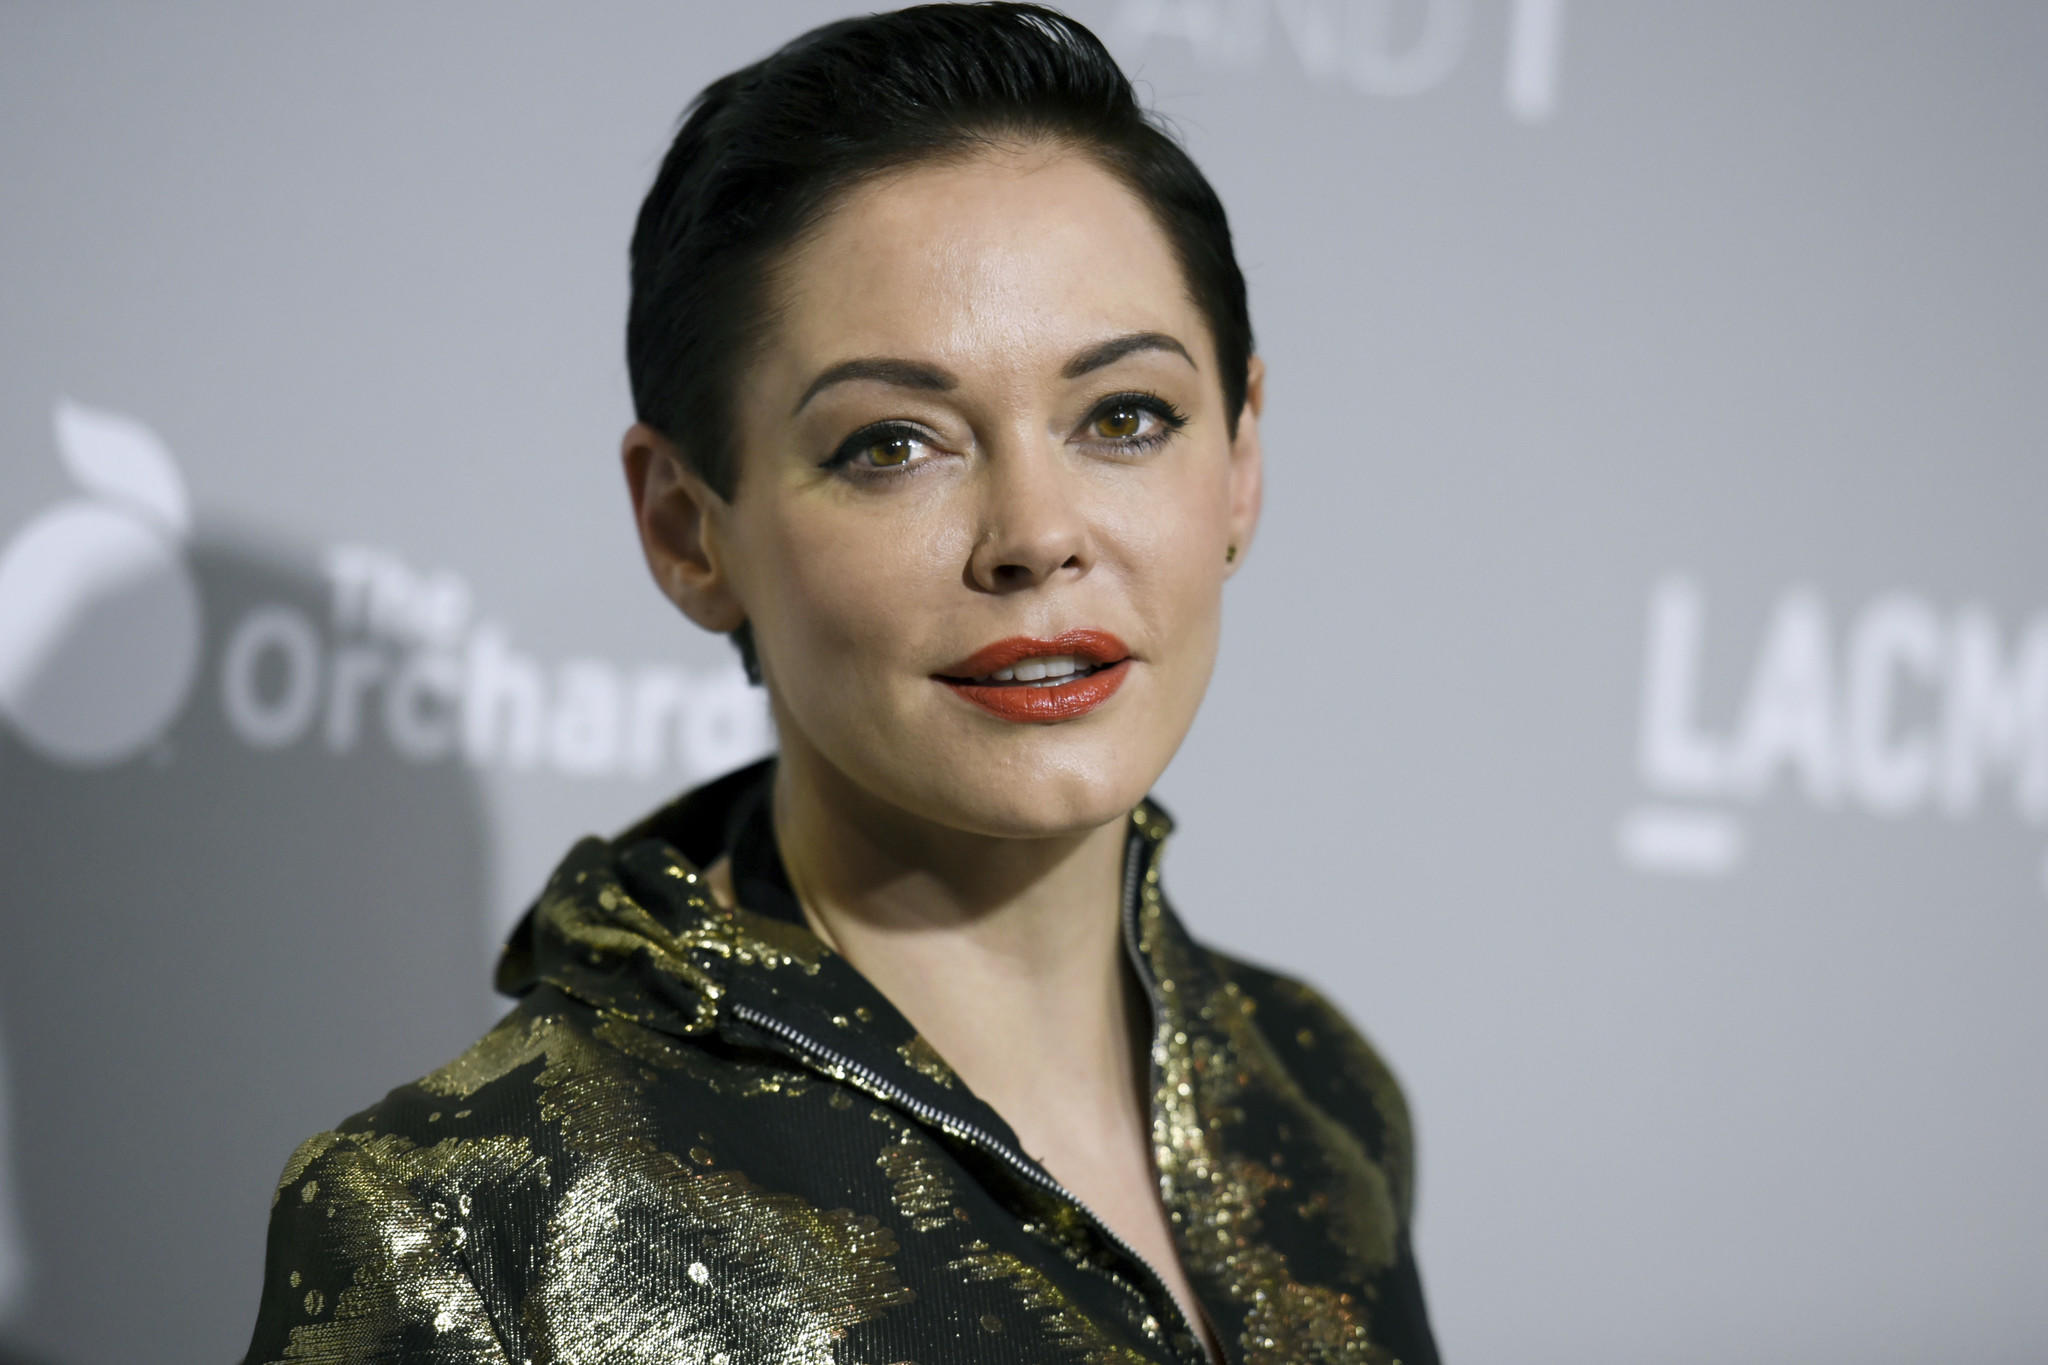 Twitter Suspends Rose McGowan After Calling Out Ben Affleck